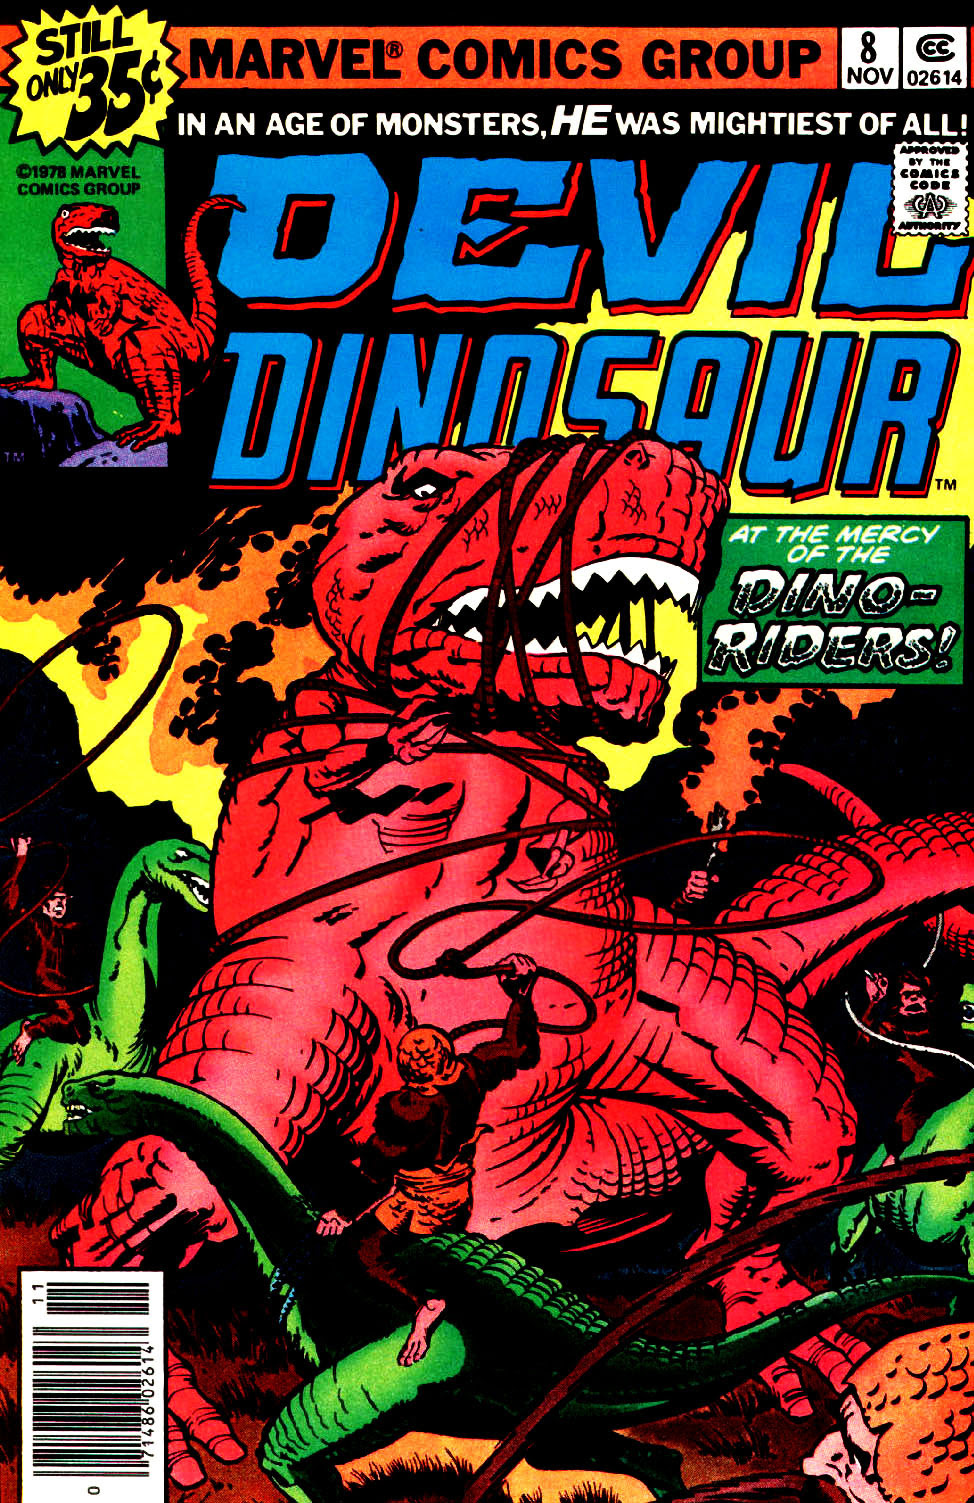 Green tea and velociraptors it s just a flesh wound - But Even That S Not Enough Kirby S Pen Takes Devil Dinosaur Onward Upward Outward Attacking Aliens Strange Technology Kirby Krackle Star Beasts Of